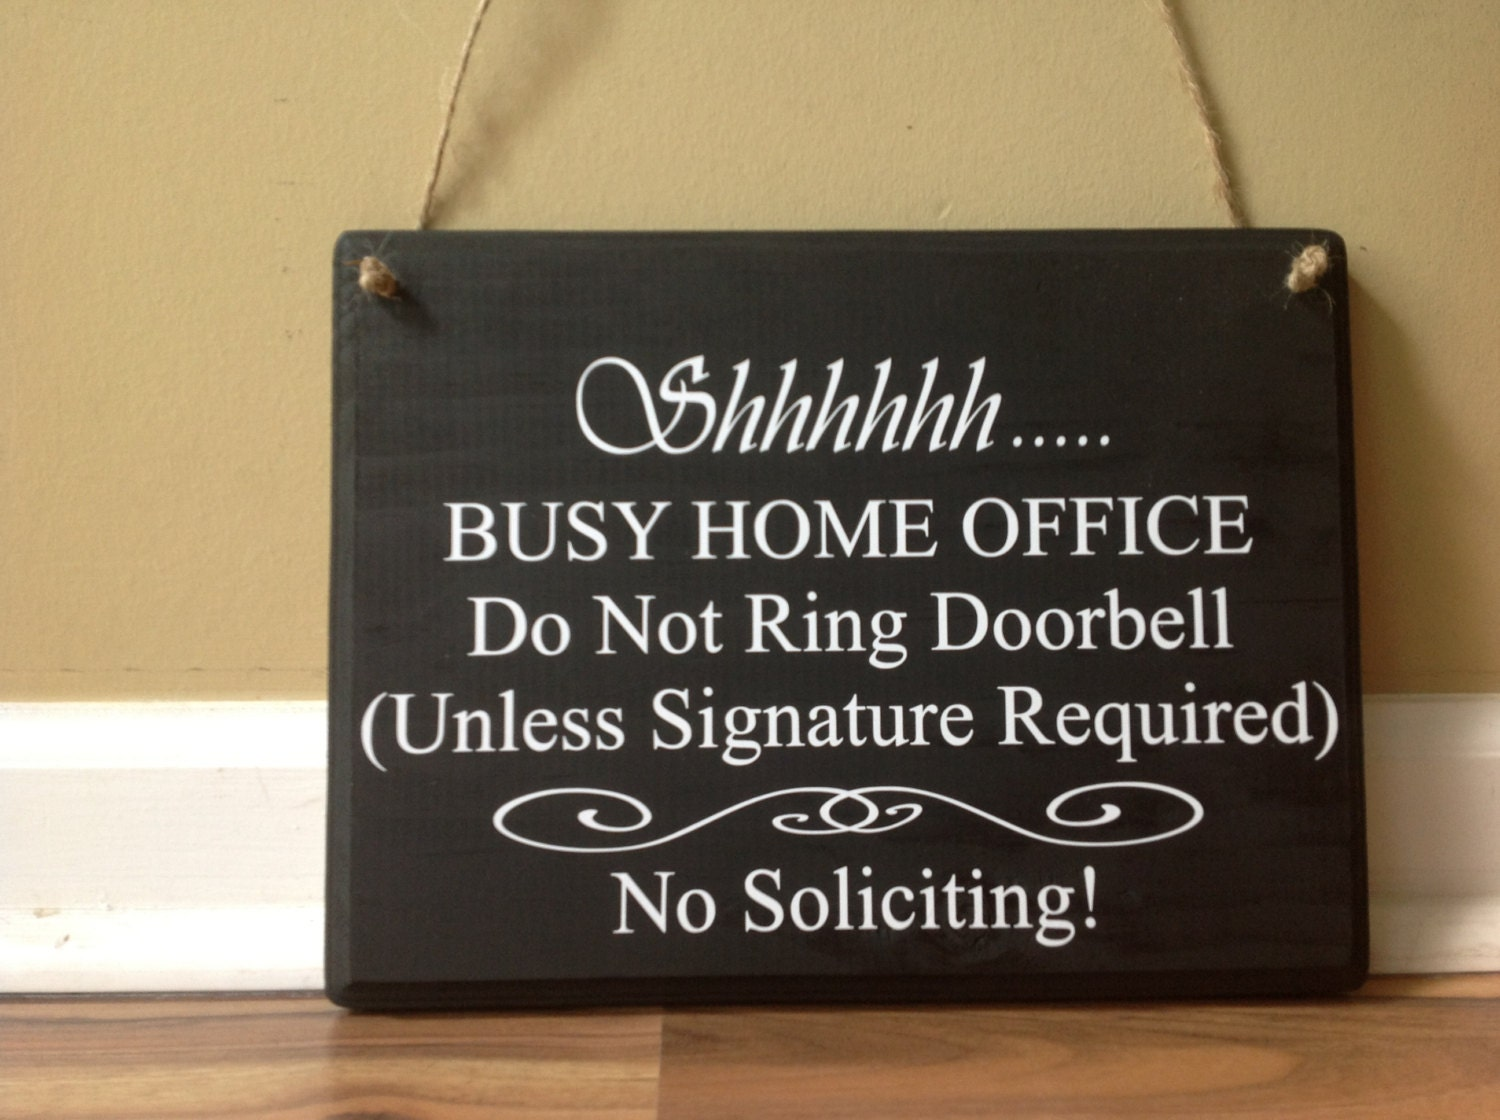 shhh busy home office do not ring doorbell unless signature is